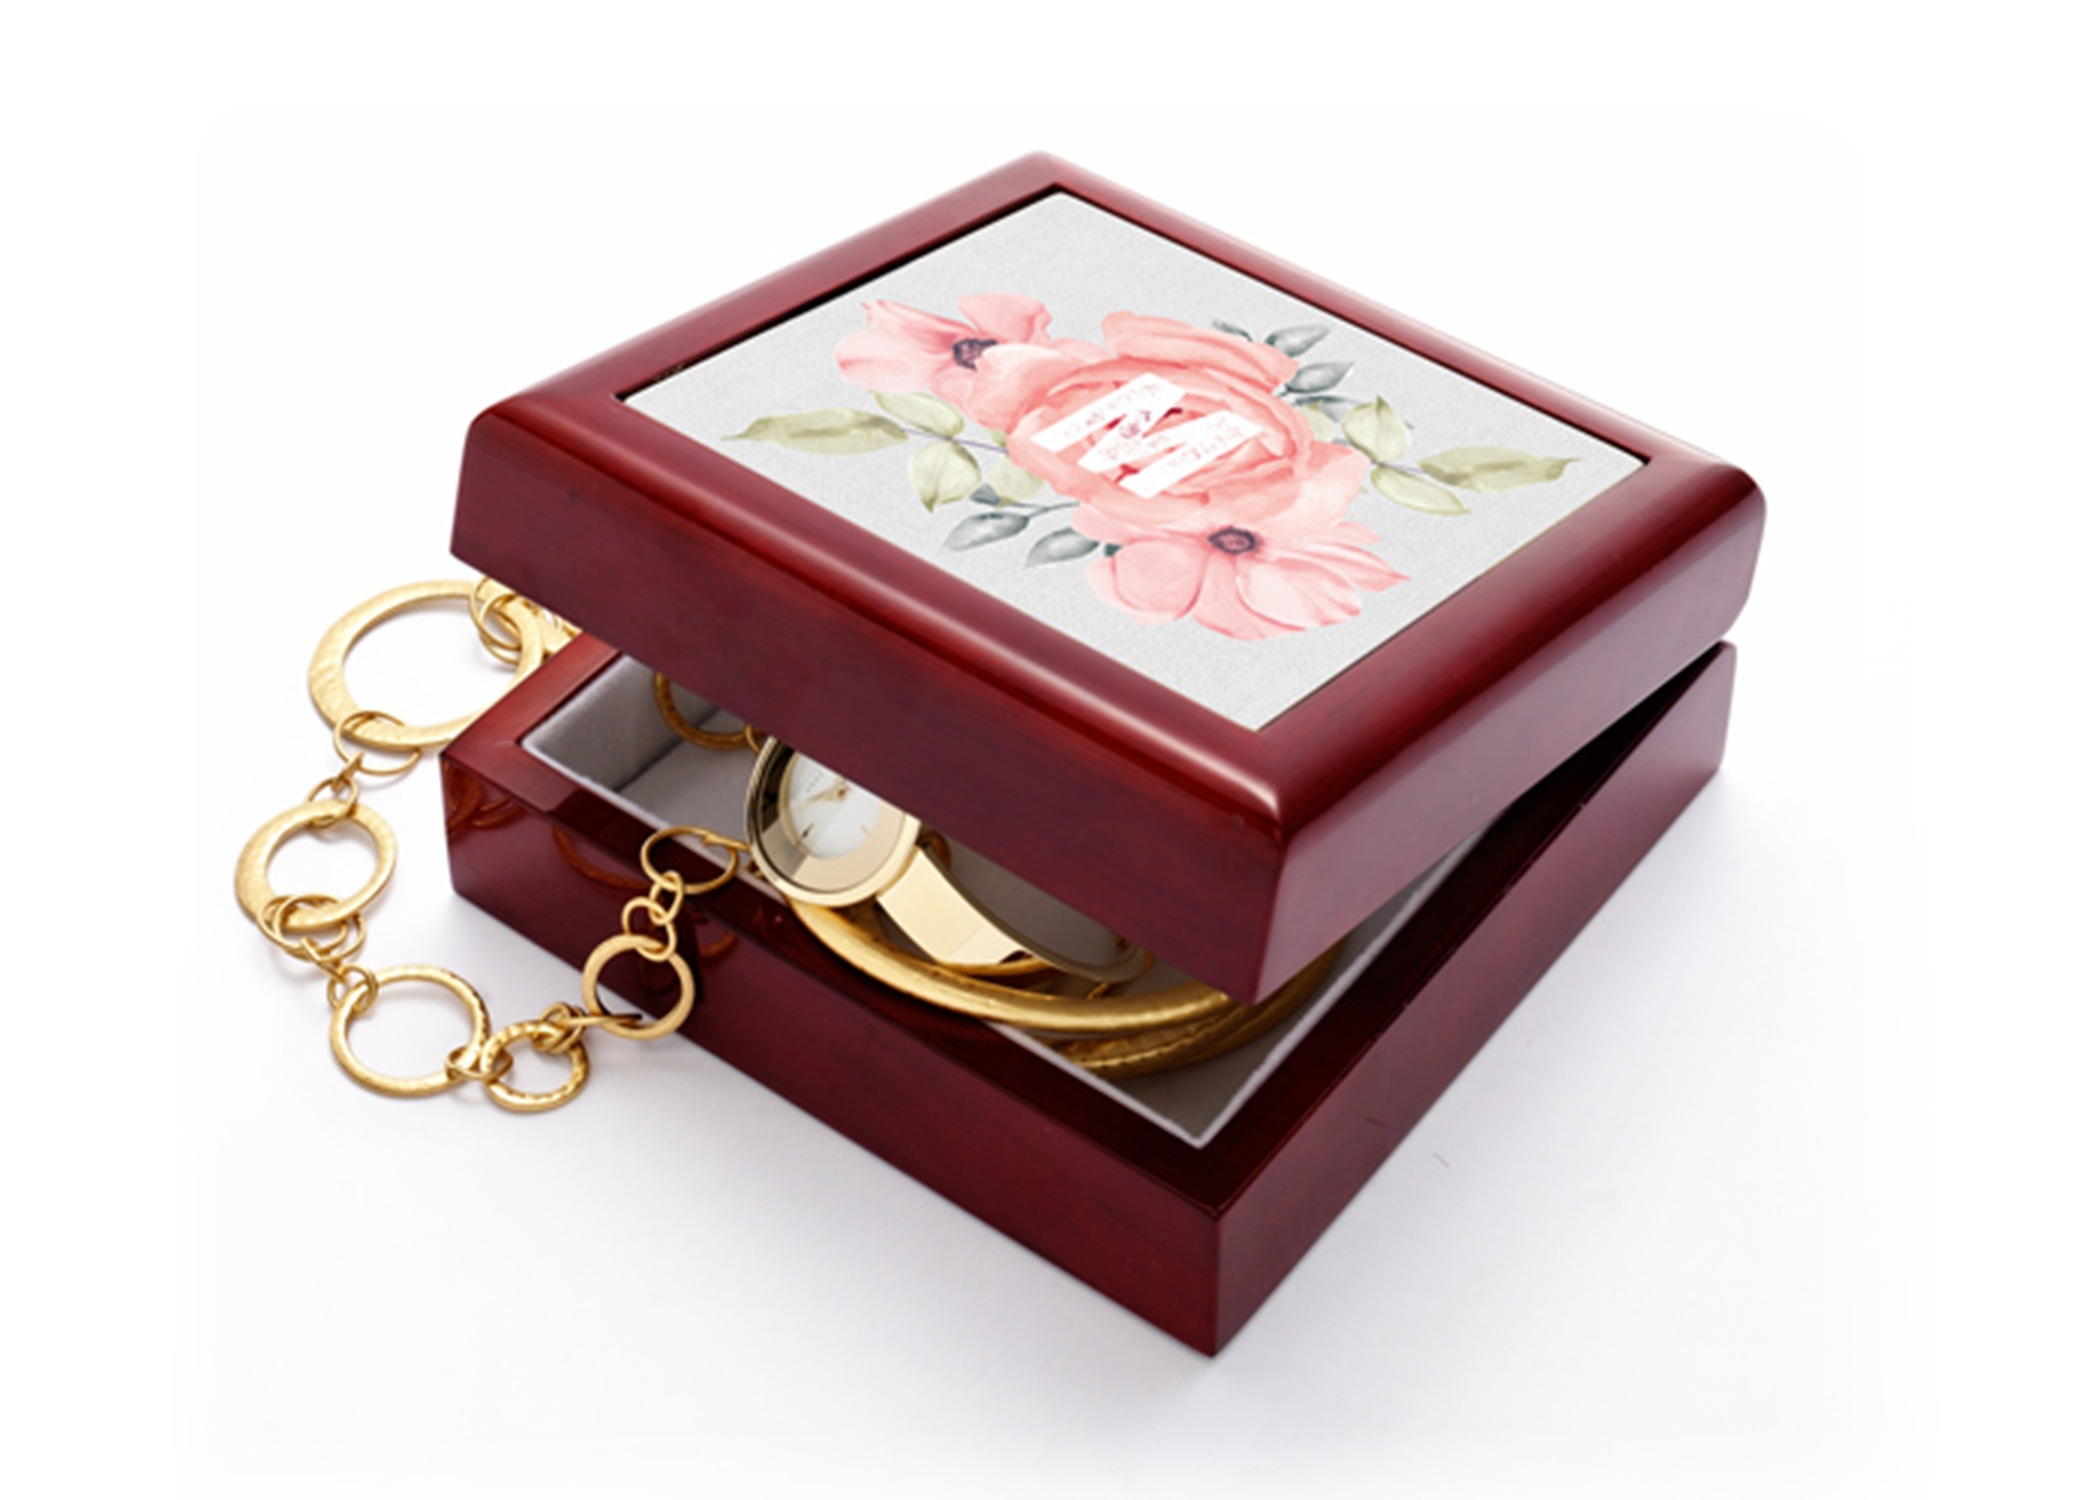 Keepsake box perfect for mothers day gift